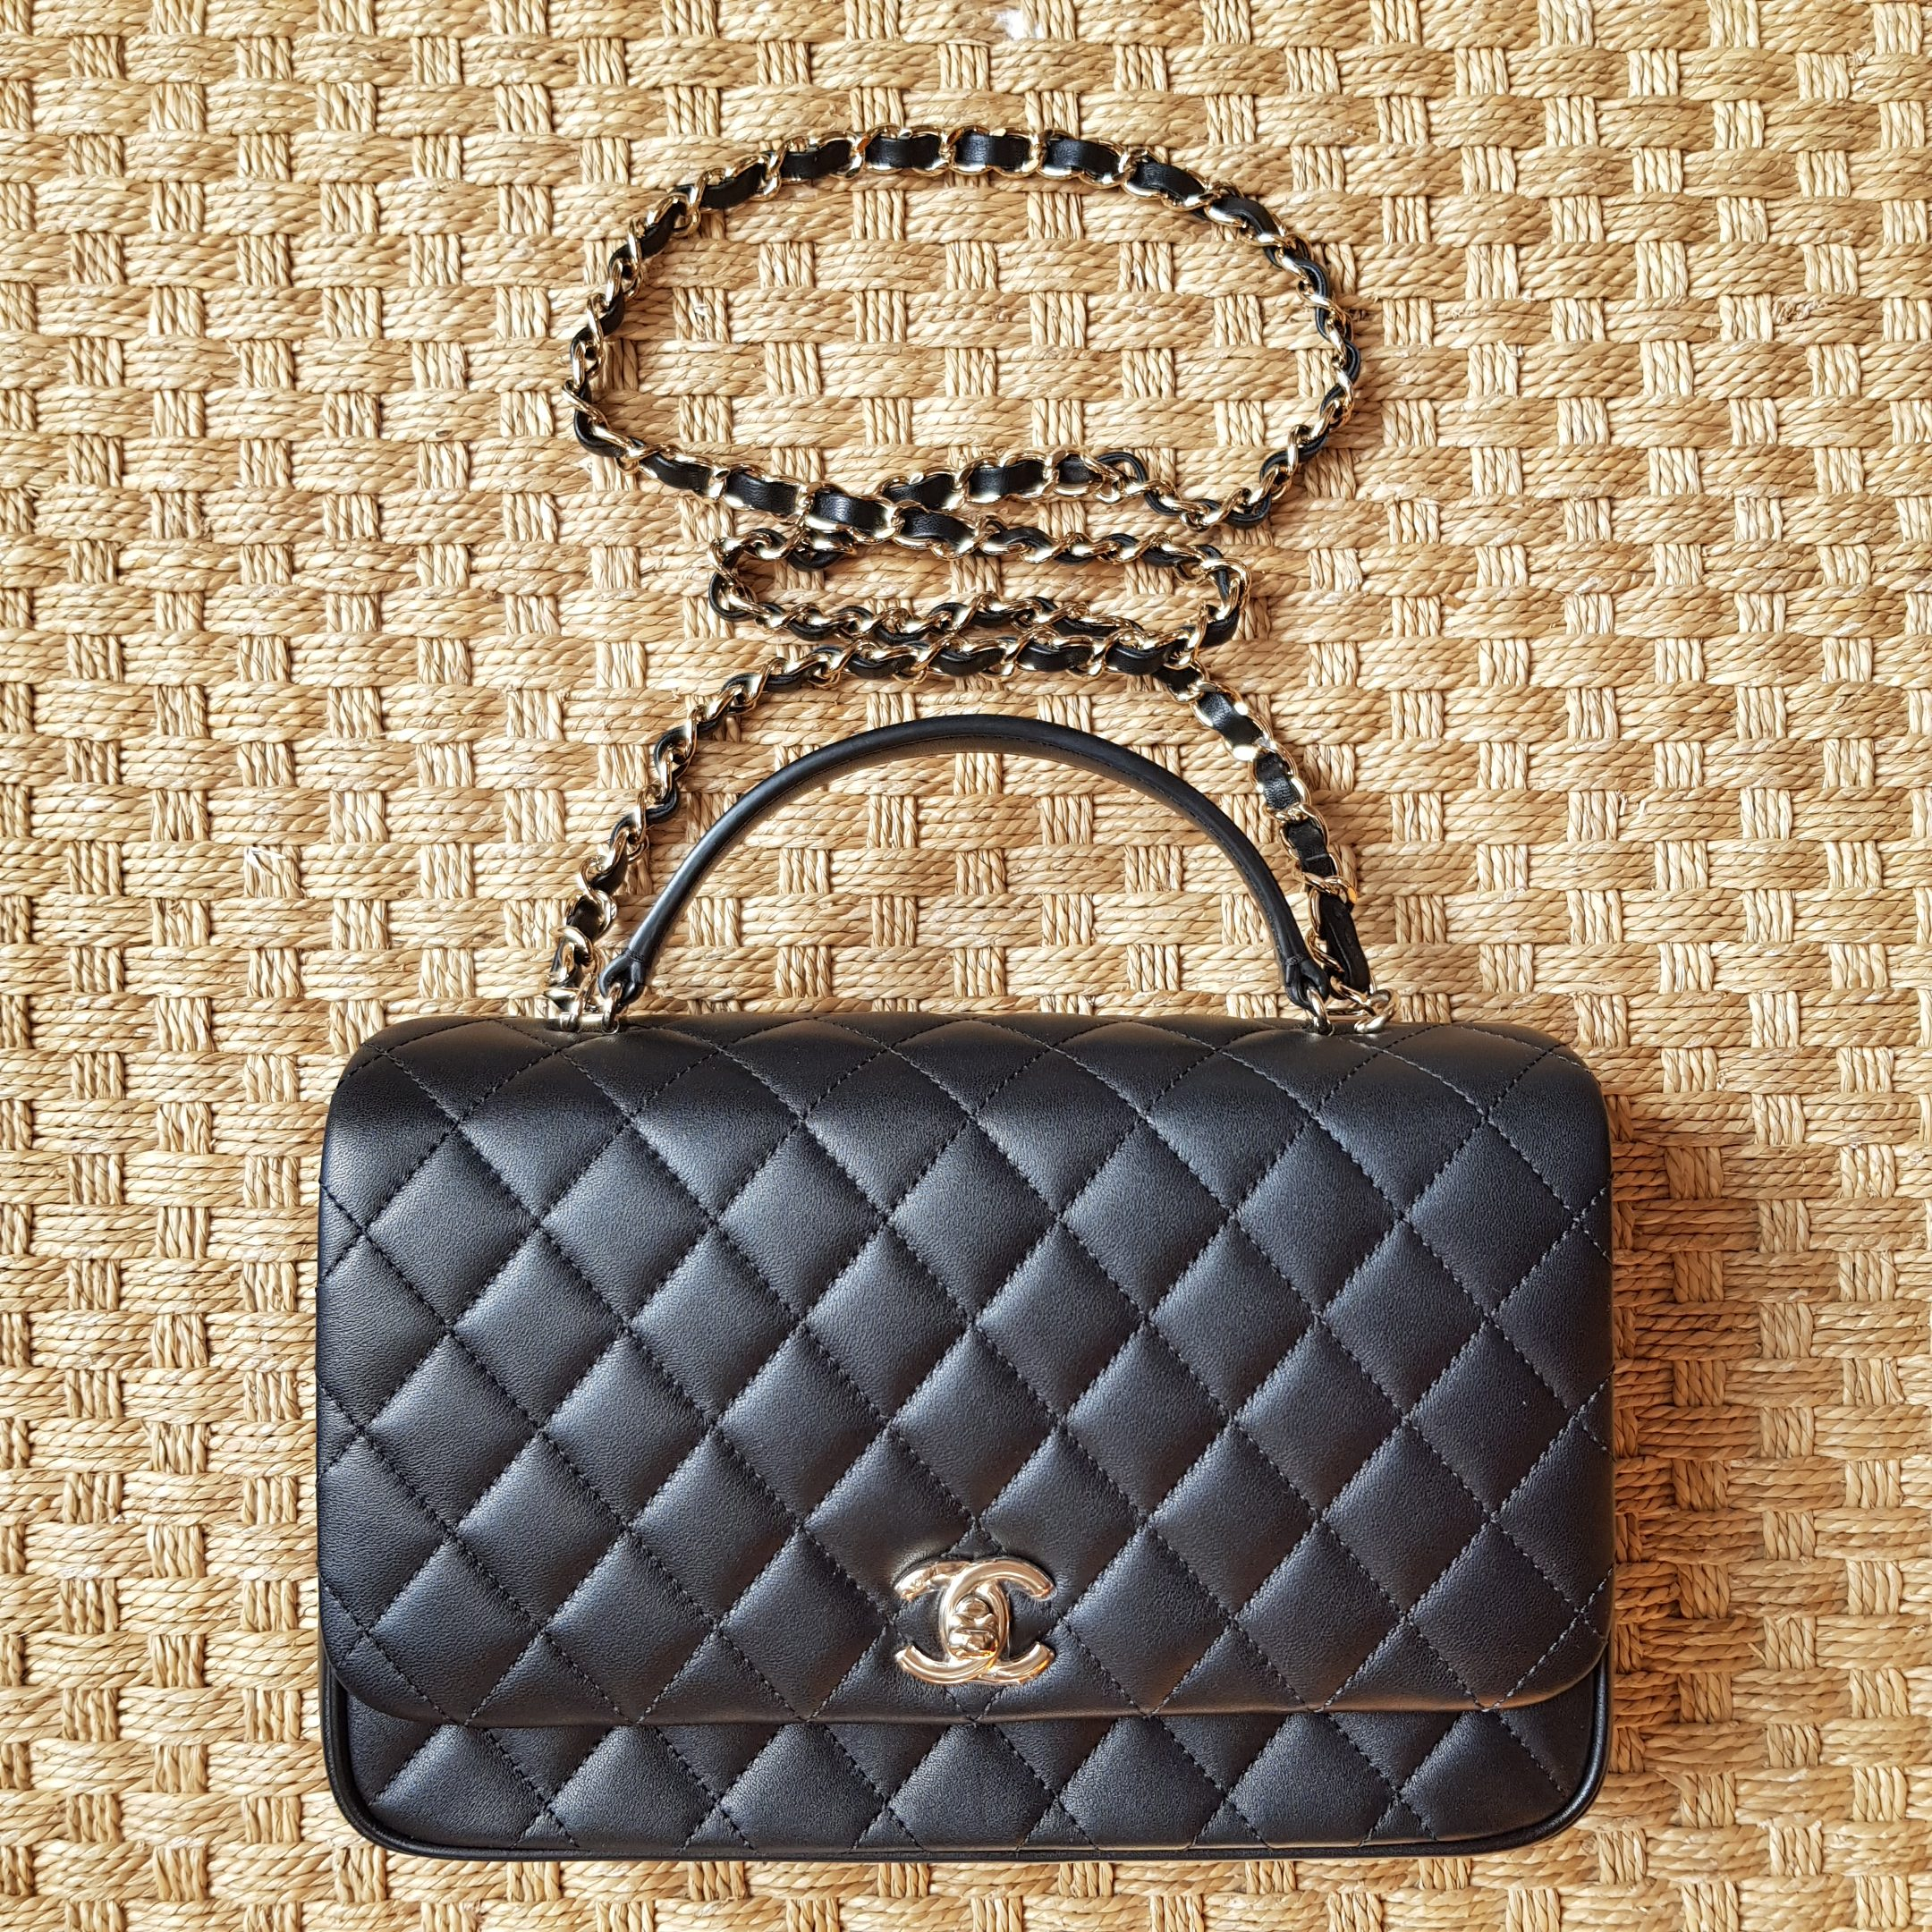 99b54daf45de Nope sorry it doesn't come in caviar leather, at least not yet. The kelly-  esque top handle- style bag comes in 3 different sizes. The mini, which is  ...